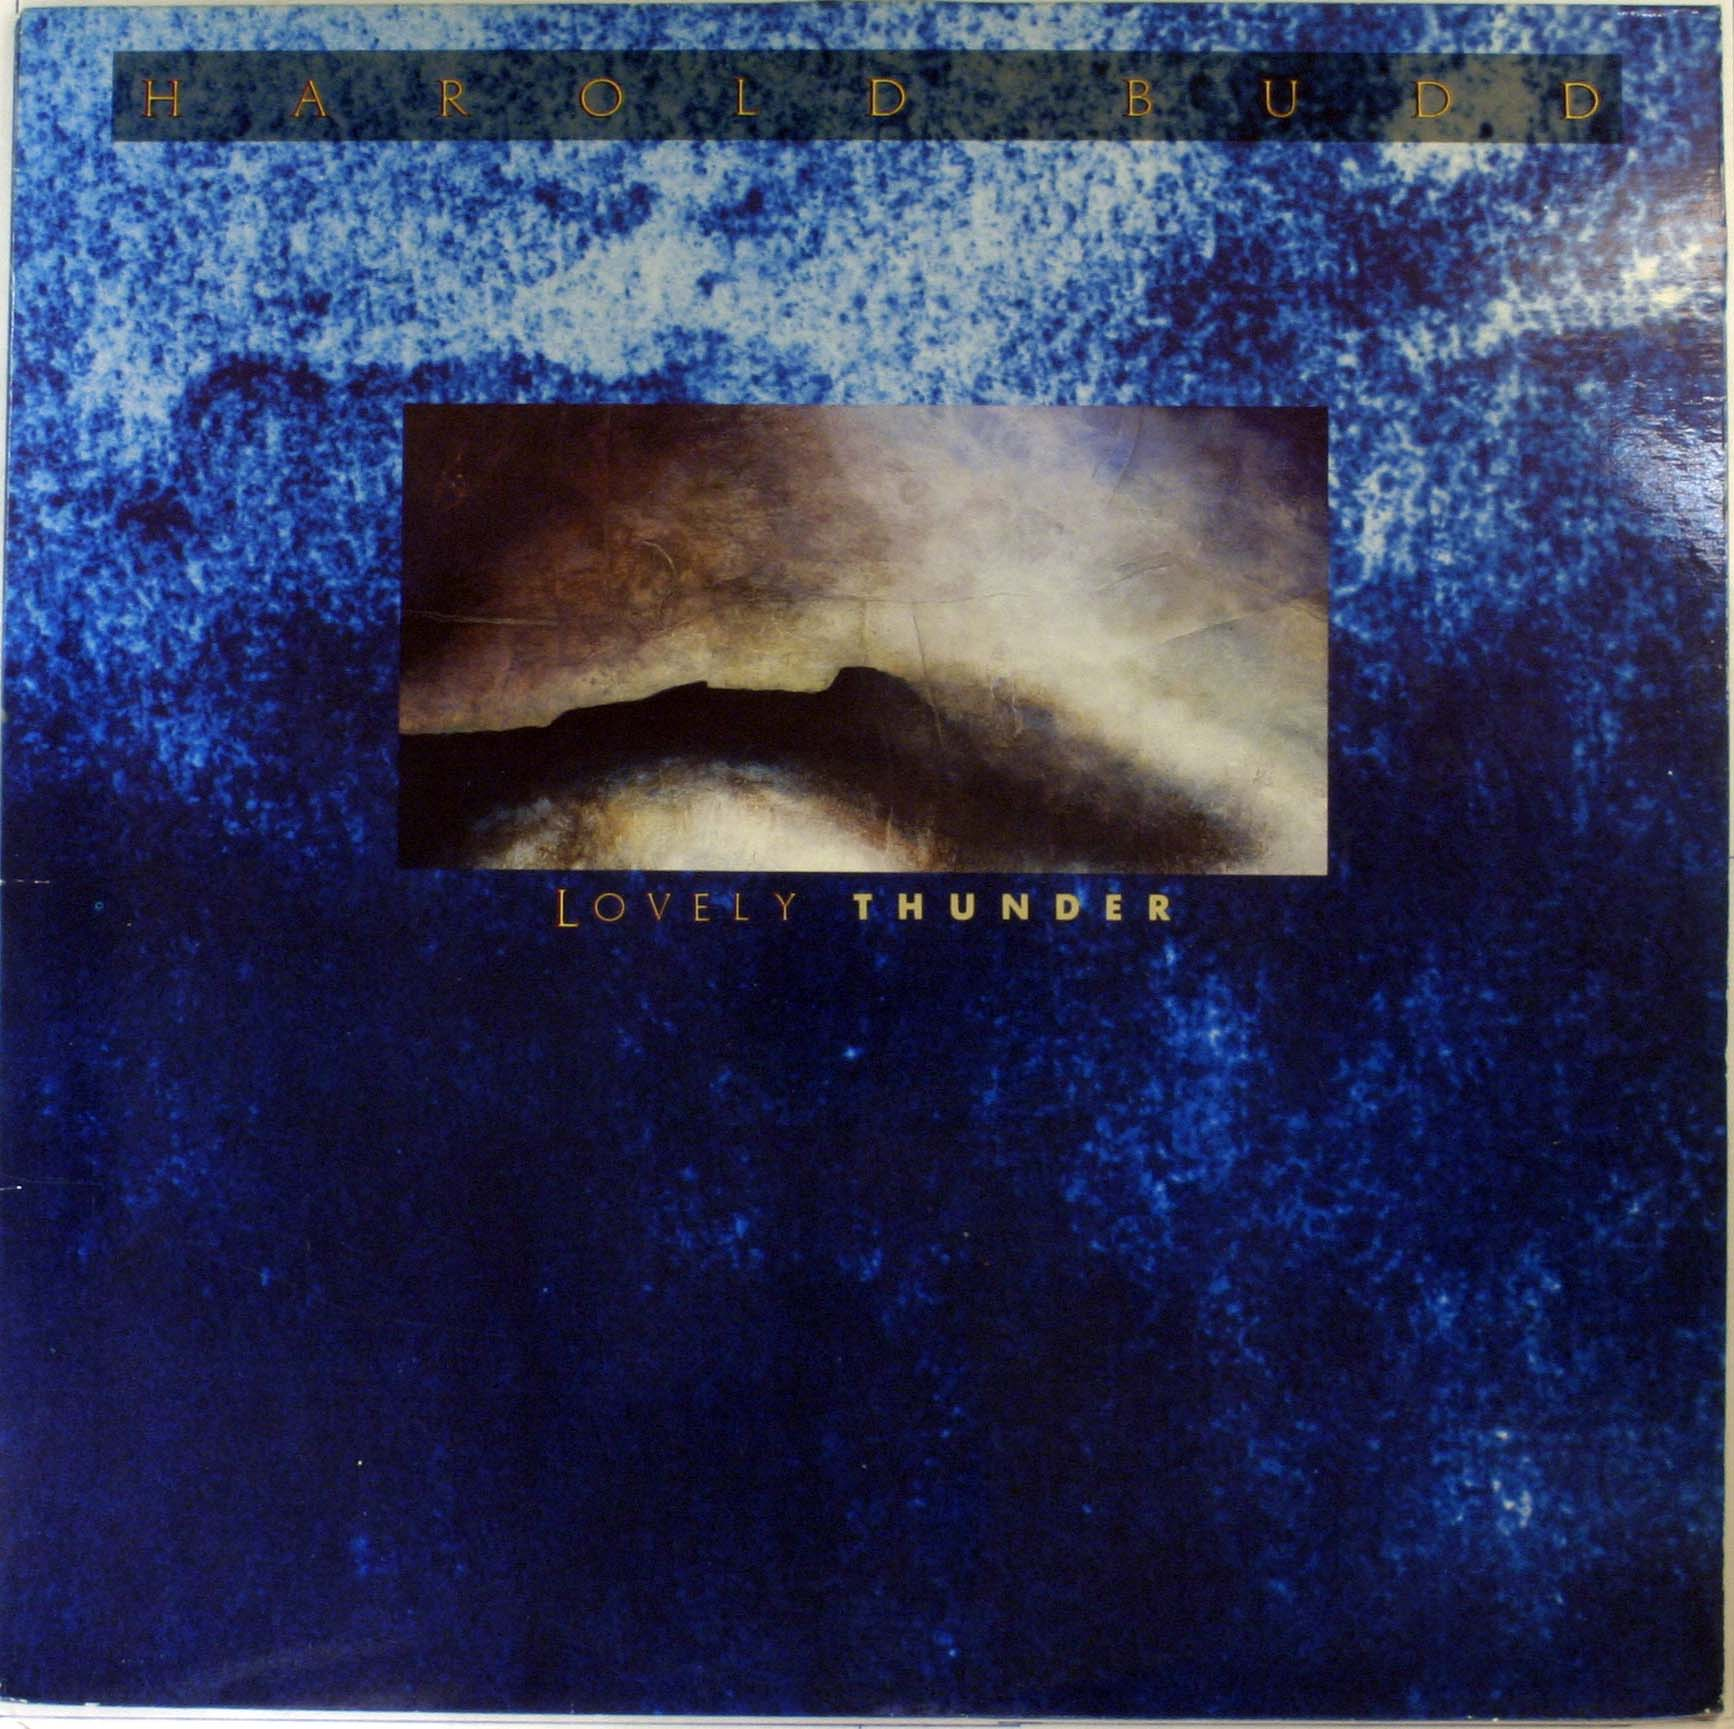 Harold Budd - Lovely Thunder CD